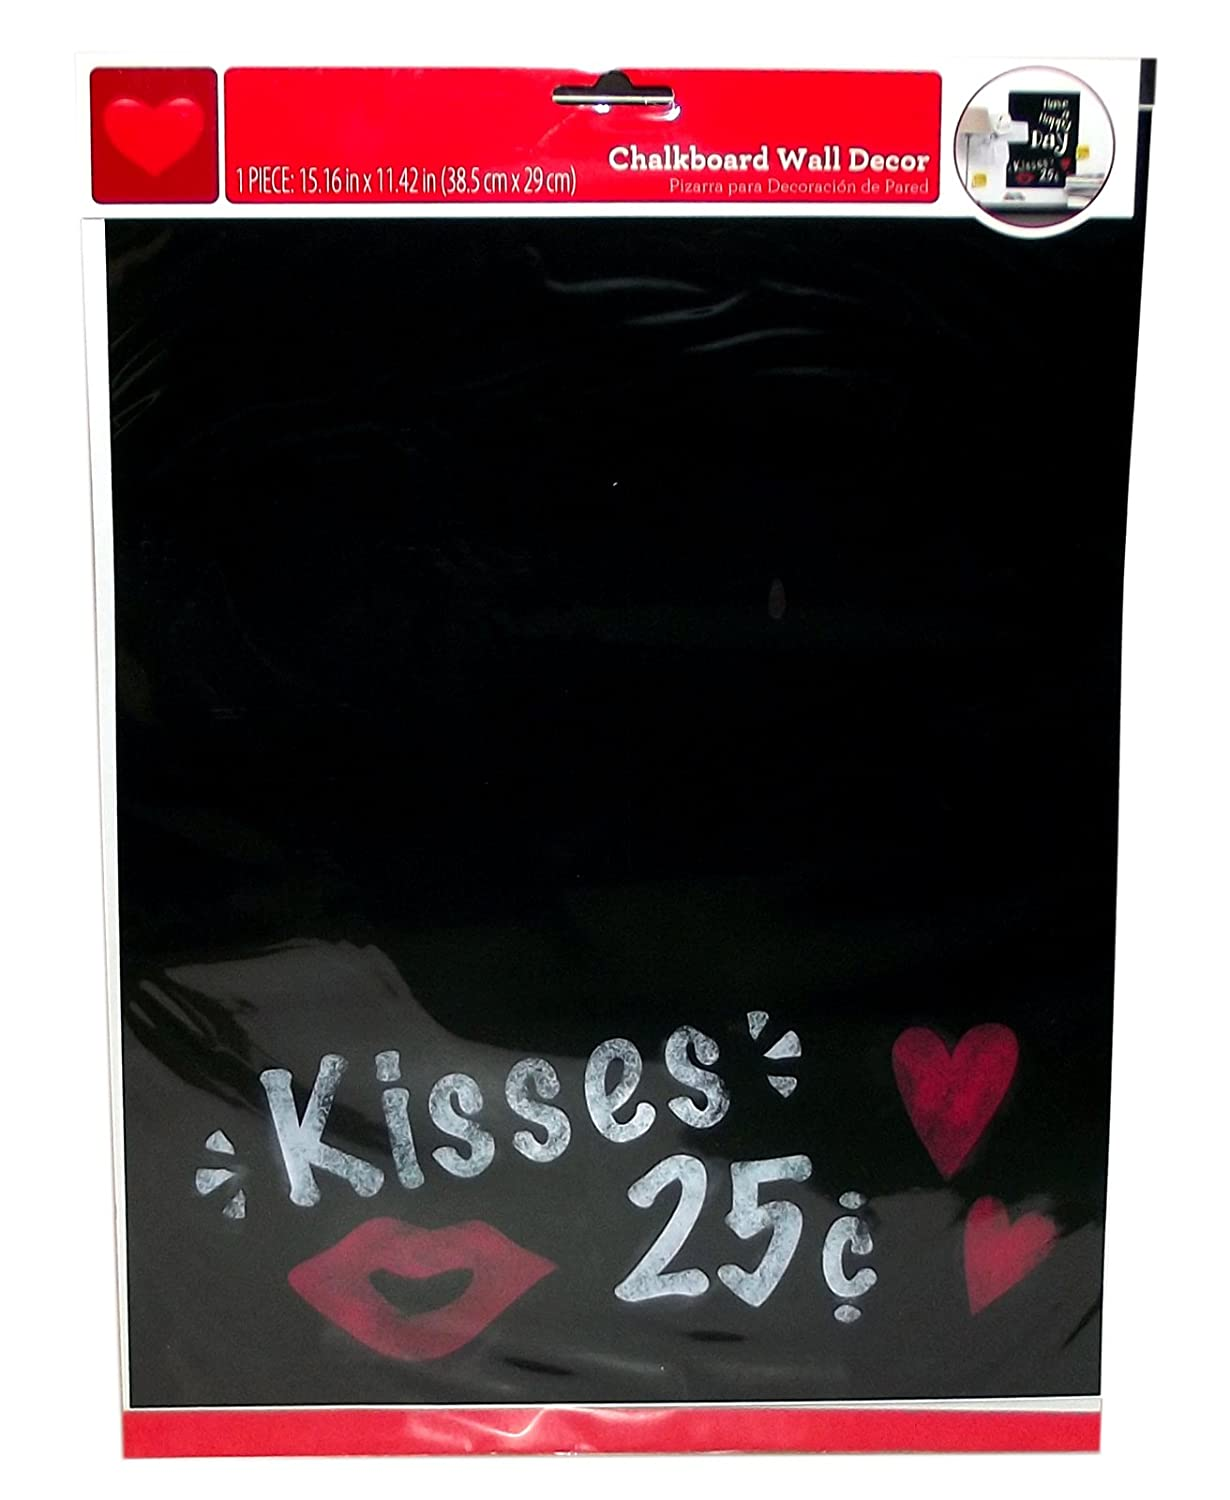 Amazon.com: Kisses Chalkboard Wall Decor 15.16 x 11.42 ...